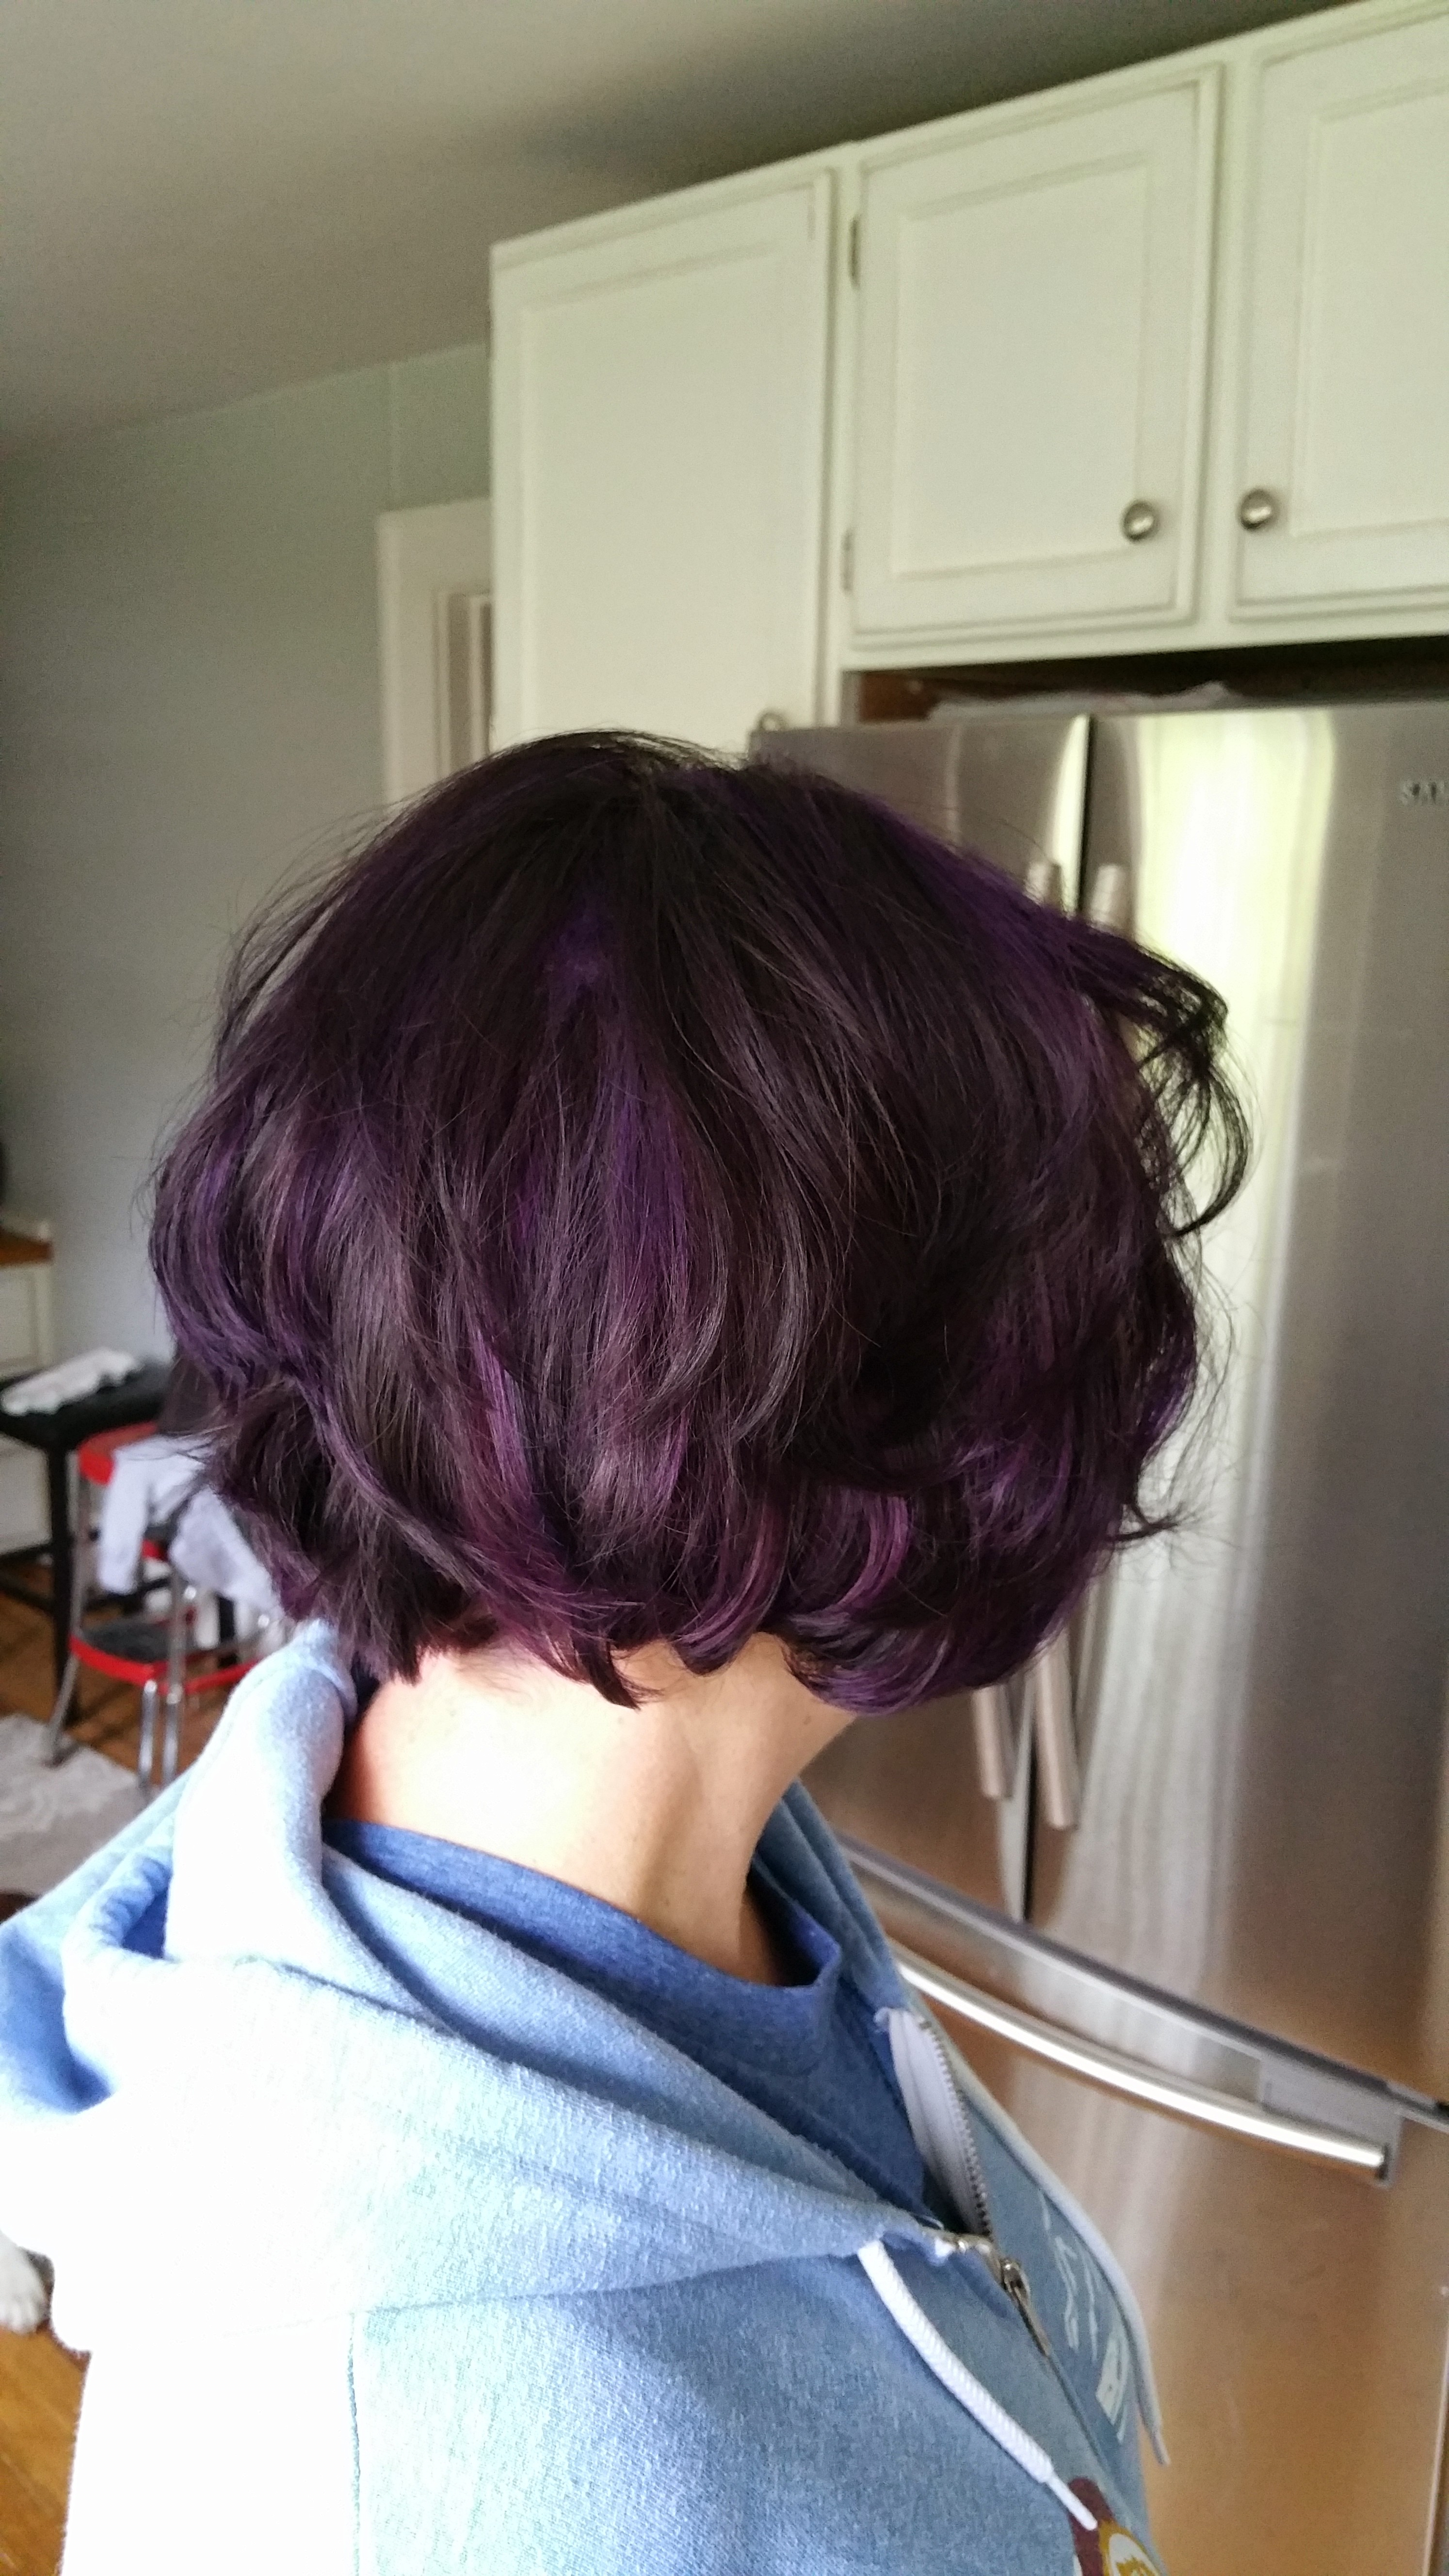 Short purple hair